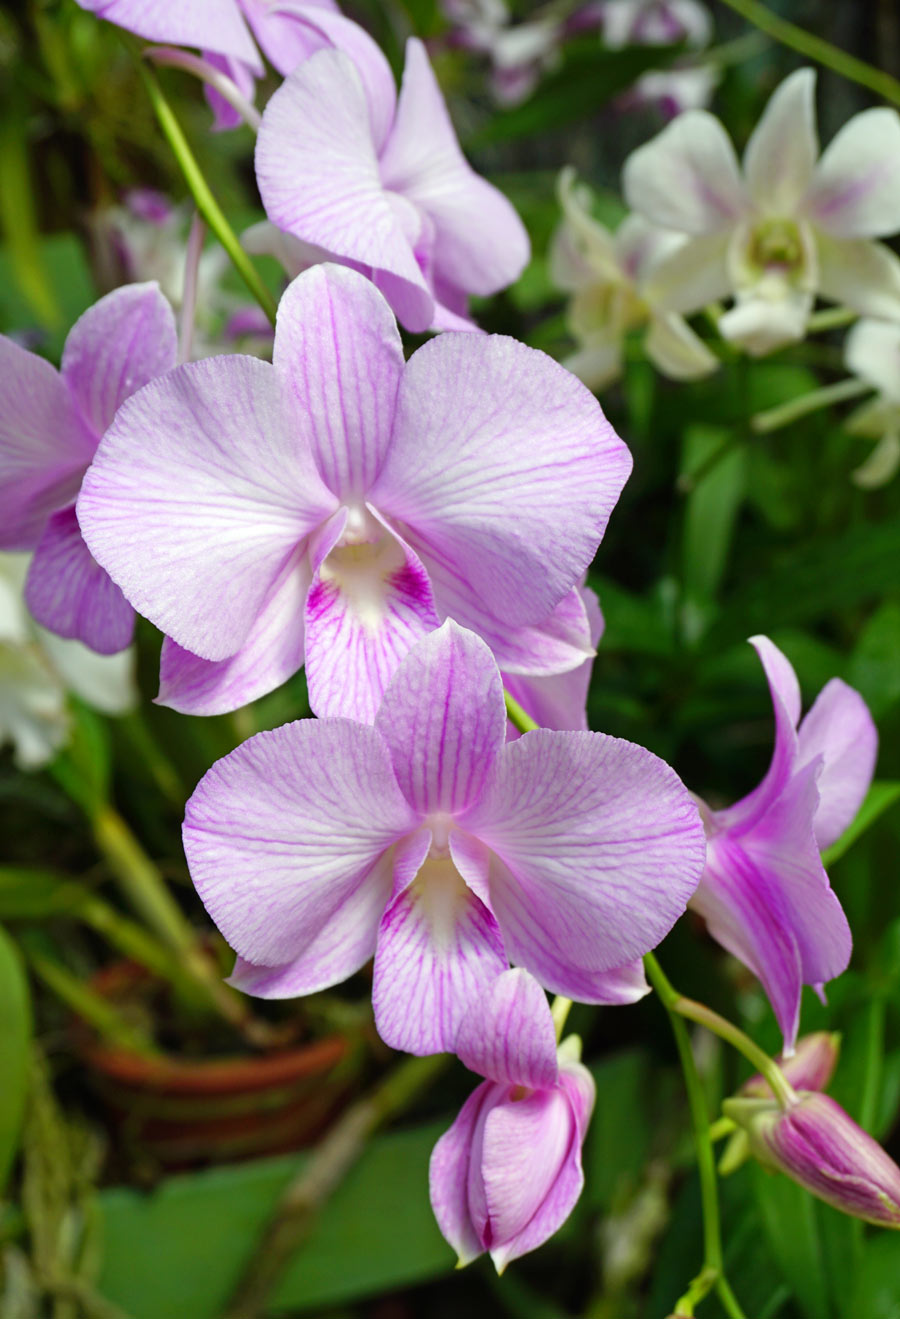 There are beautiful orchids on display at the Kandy Royal Botanical Gardens.